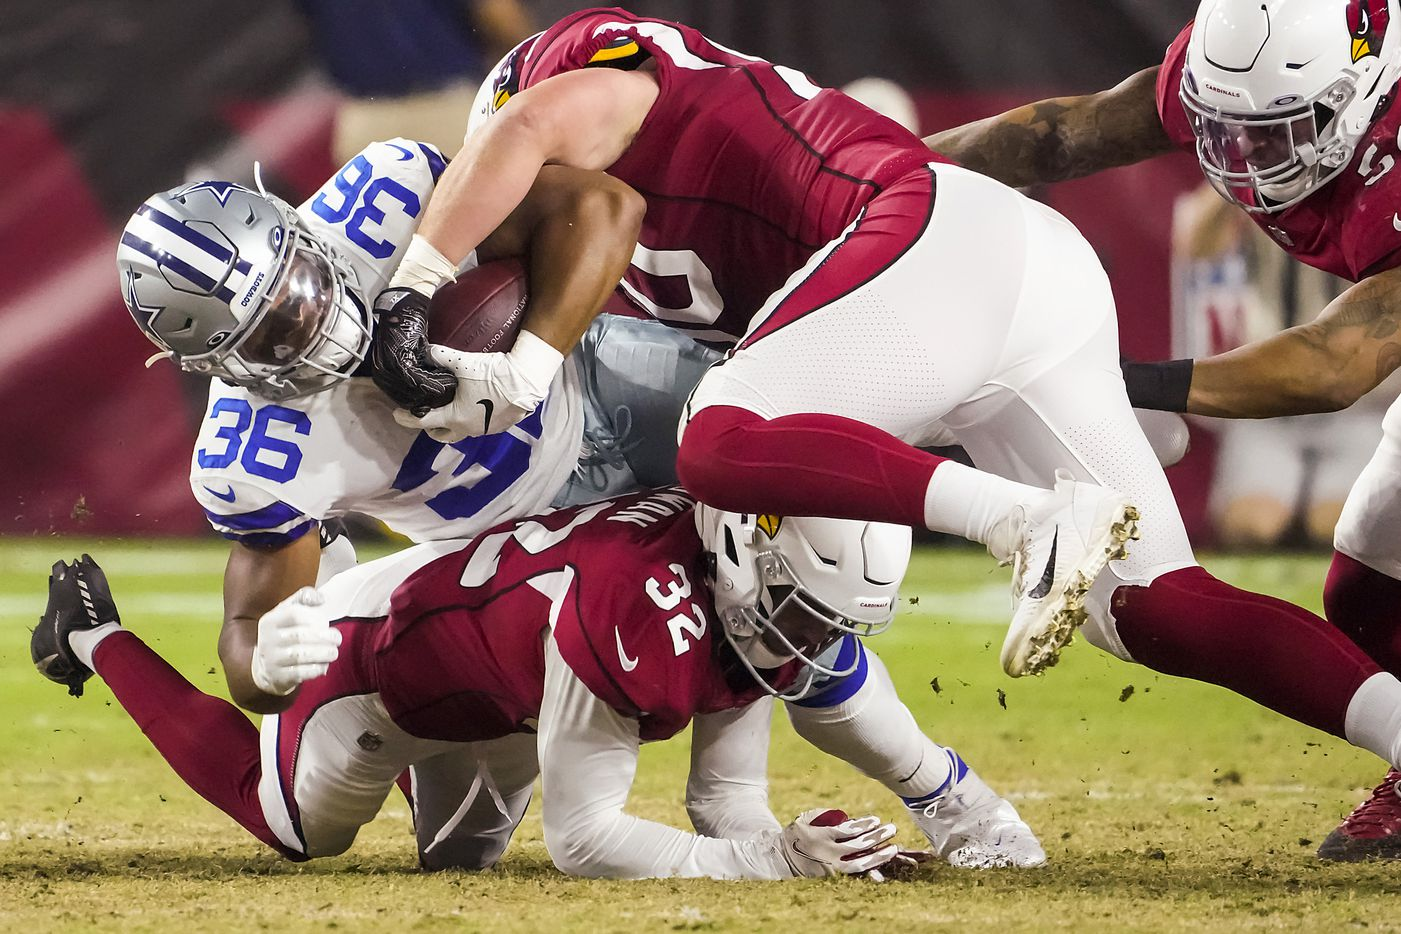 Dallas Cowboys running back Brenden Knox (36) is brought down by Arizona Cardinals linebacker Evan Weaver (50) and cornerback Tay Gowan (32) during the second half of a preseason NFL football game at State Farm Stadium on Friday, Aug. 13, 2021, in Glendale, Ariz.